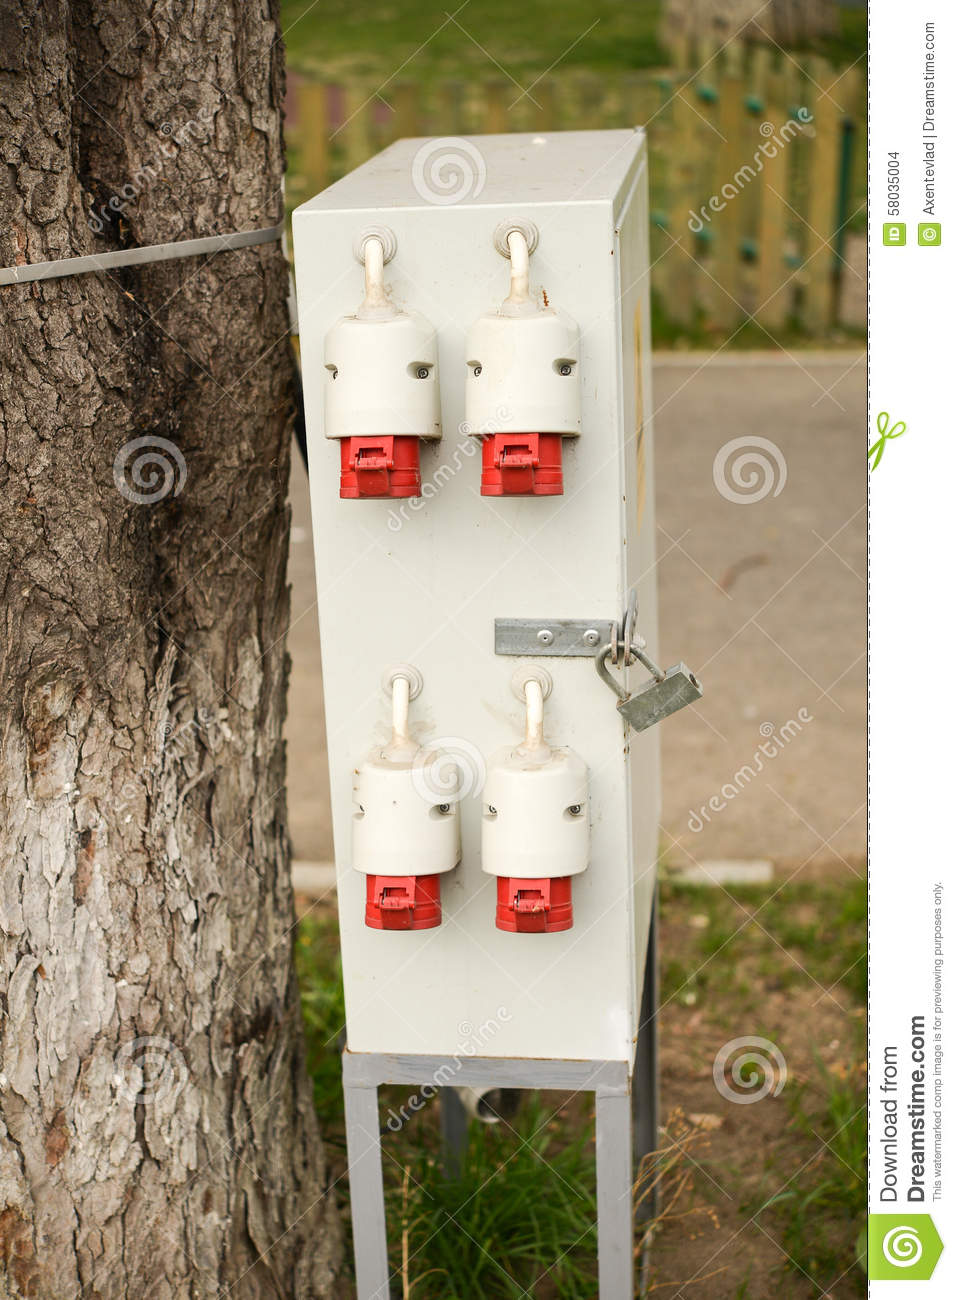 Outdoor Electric Control Box Stock Photo - Image of label